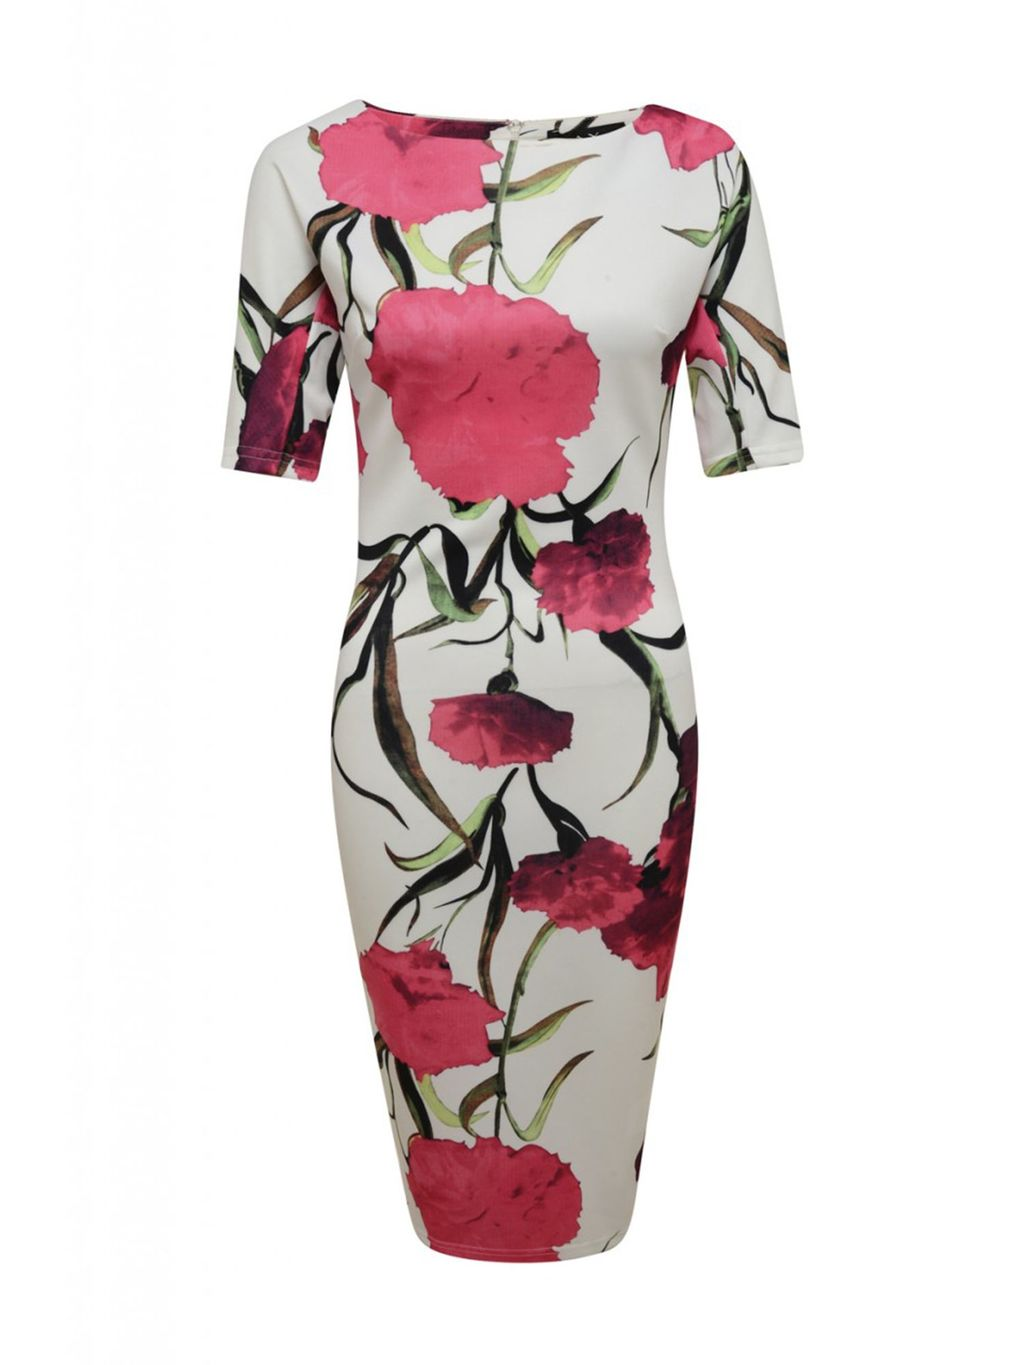 Short Sleeve Floral Midi Dress, Cream - style: shift; neckline: slash/boat neckline; secondary colour: hot pink; predominant colour: light grey; length: on the knee; fit: body skimming; fibres: polyester/polyamide - stretch; occasions: occasion; sleeve length: short sleeve; sleeve style: standard; pattern type: fabric; pattern size: big & busy; pattern: florals; texture group: jersey - stretchy/drapey; season: s/s 2016; wardrobe: event